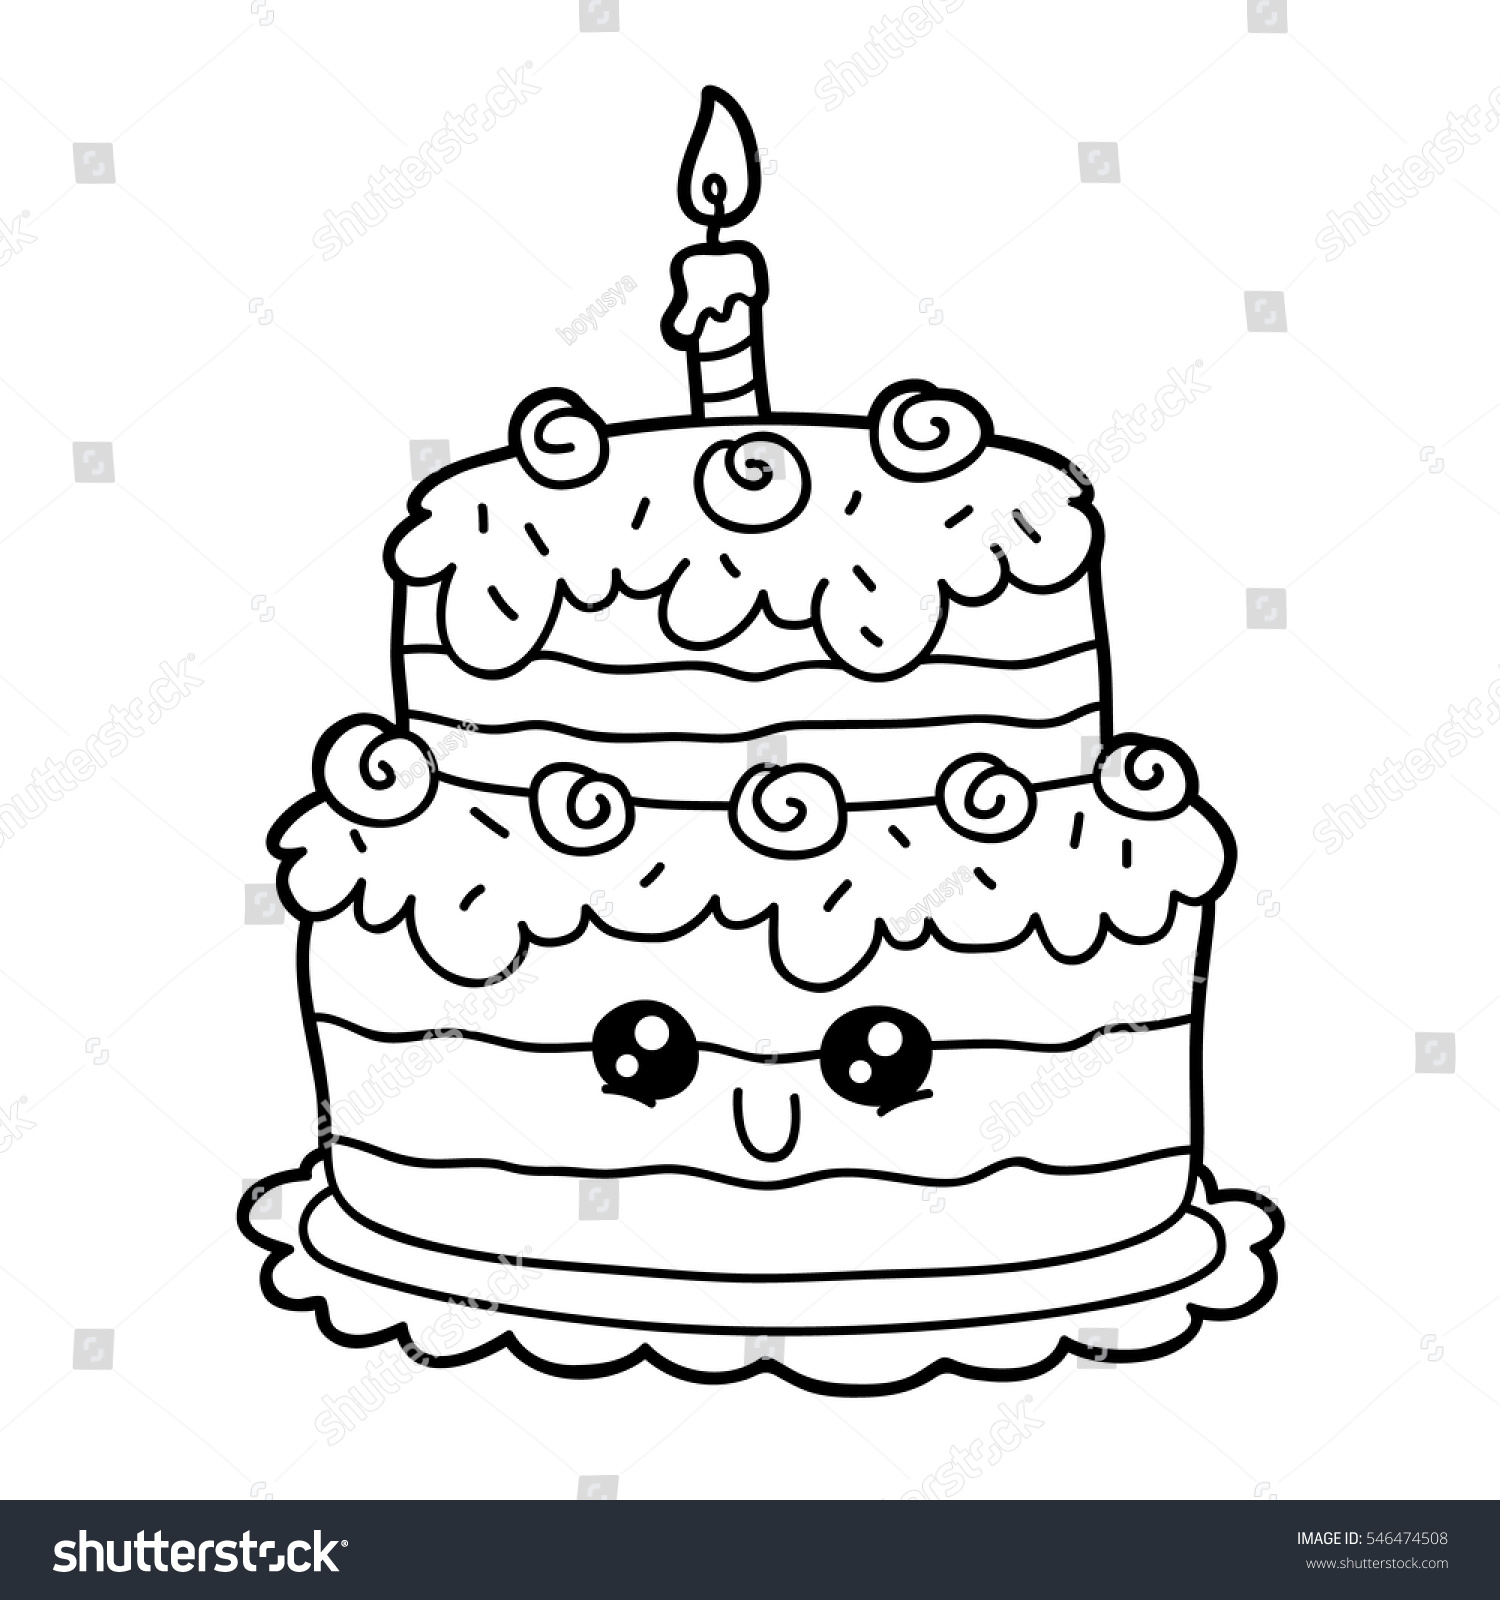 Vector Illustration Of Cute Cartoon Birthday Cake Character For Children Coloring Page